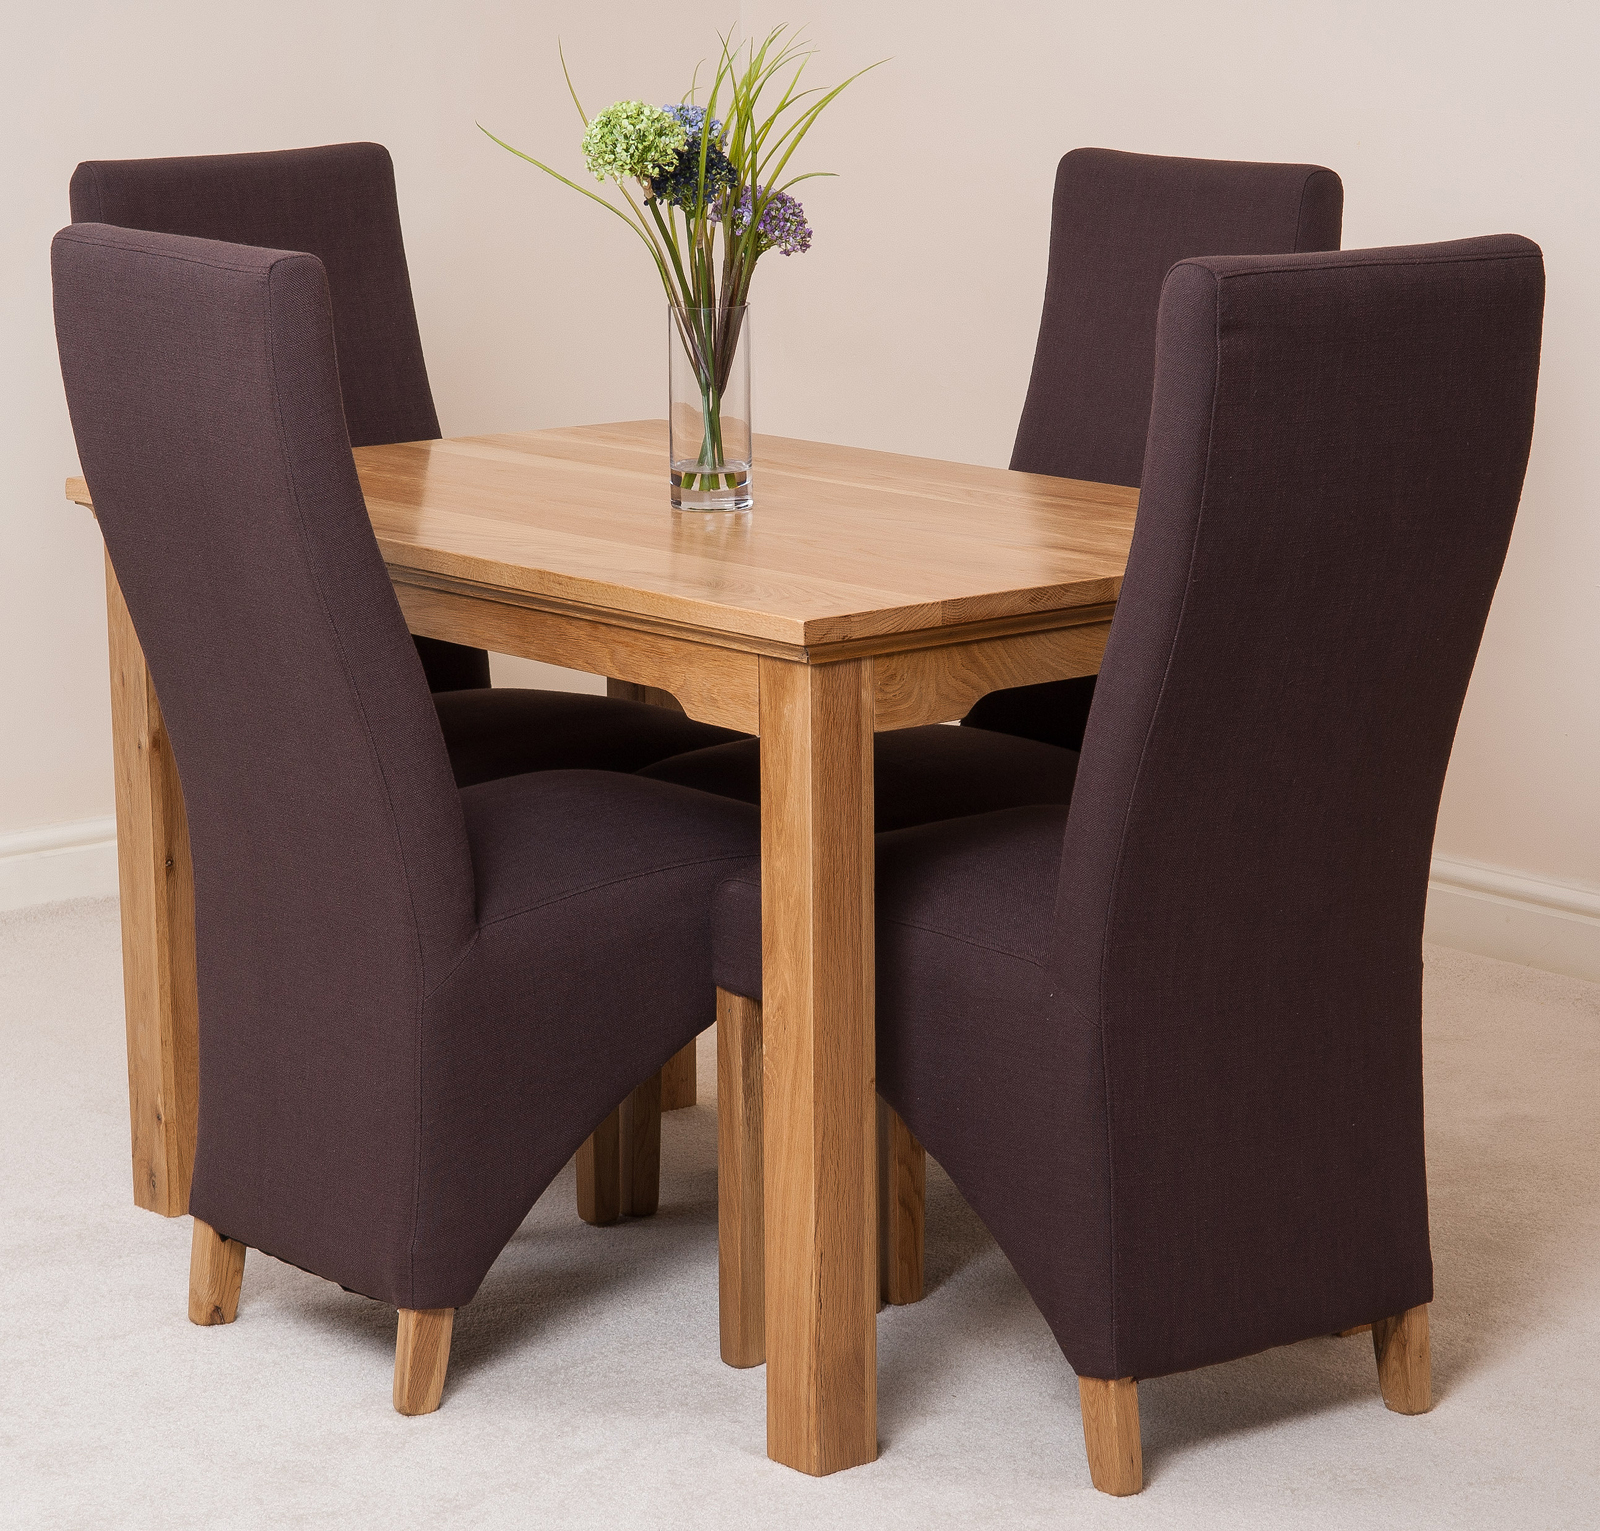 Aspen solid oak 120cm dining table 4 lola fabric curved for 120 dining table sets